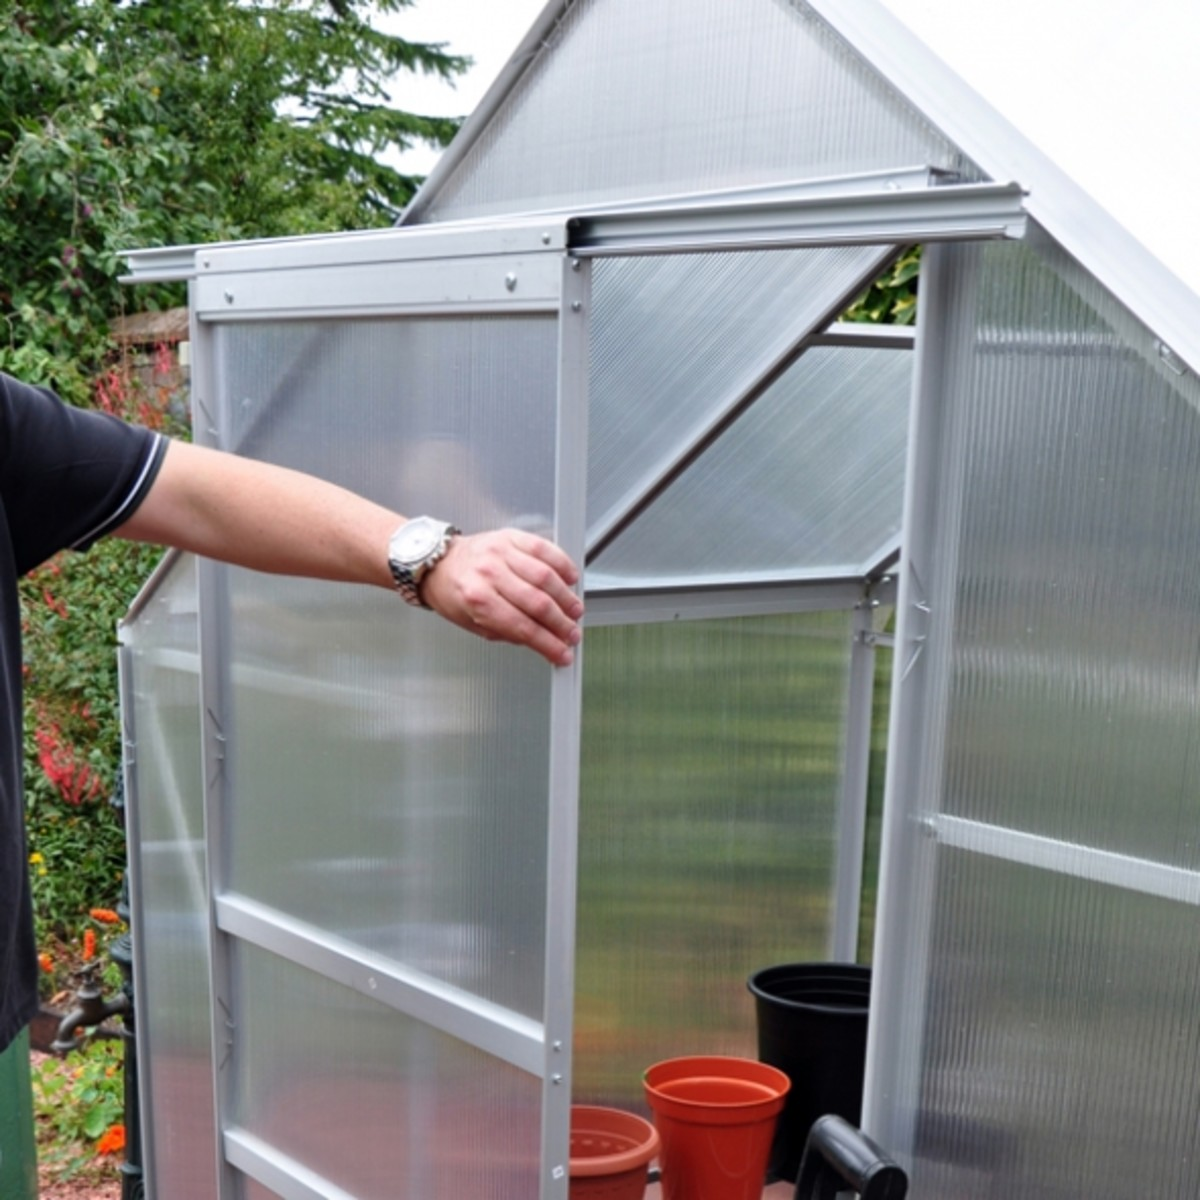 Kingfisher Greenhouse 6x4 Sliding Door